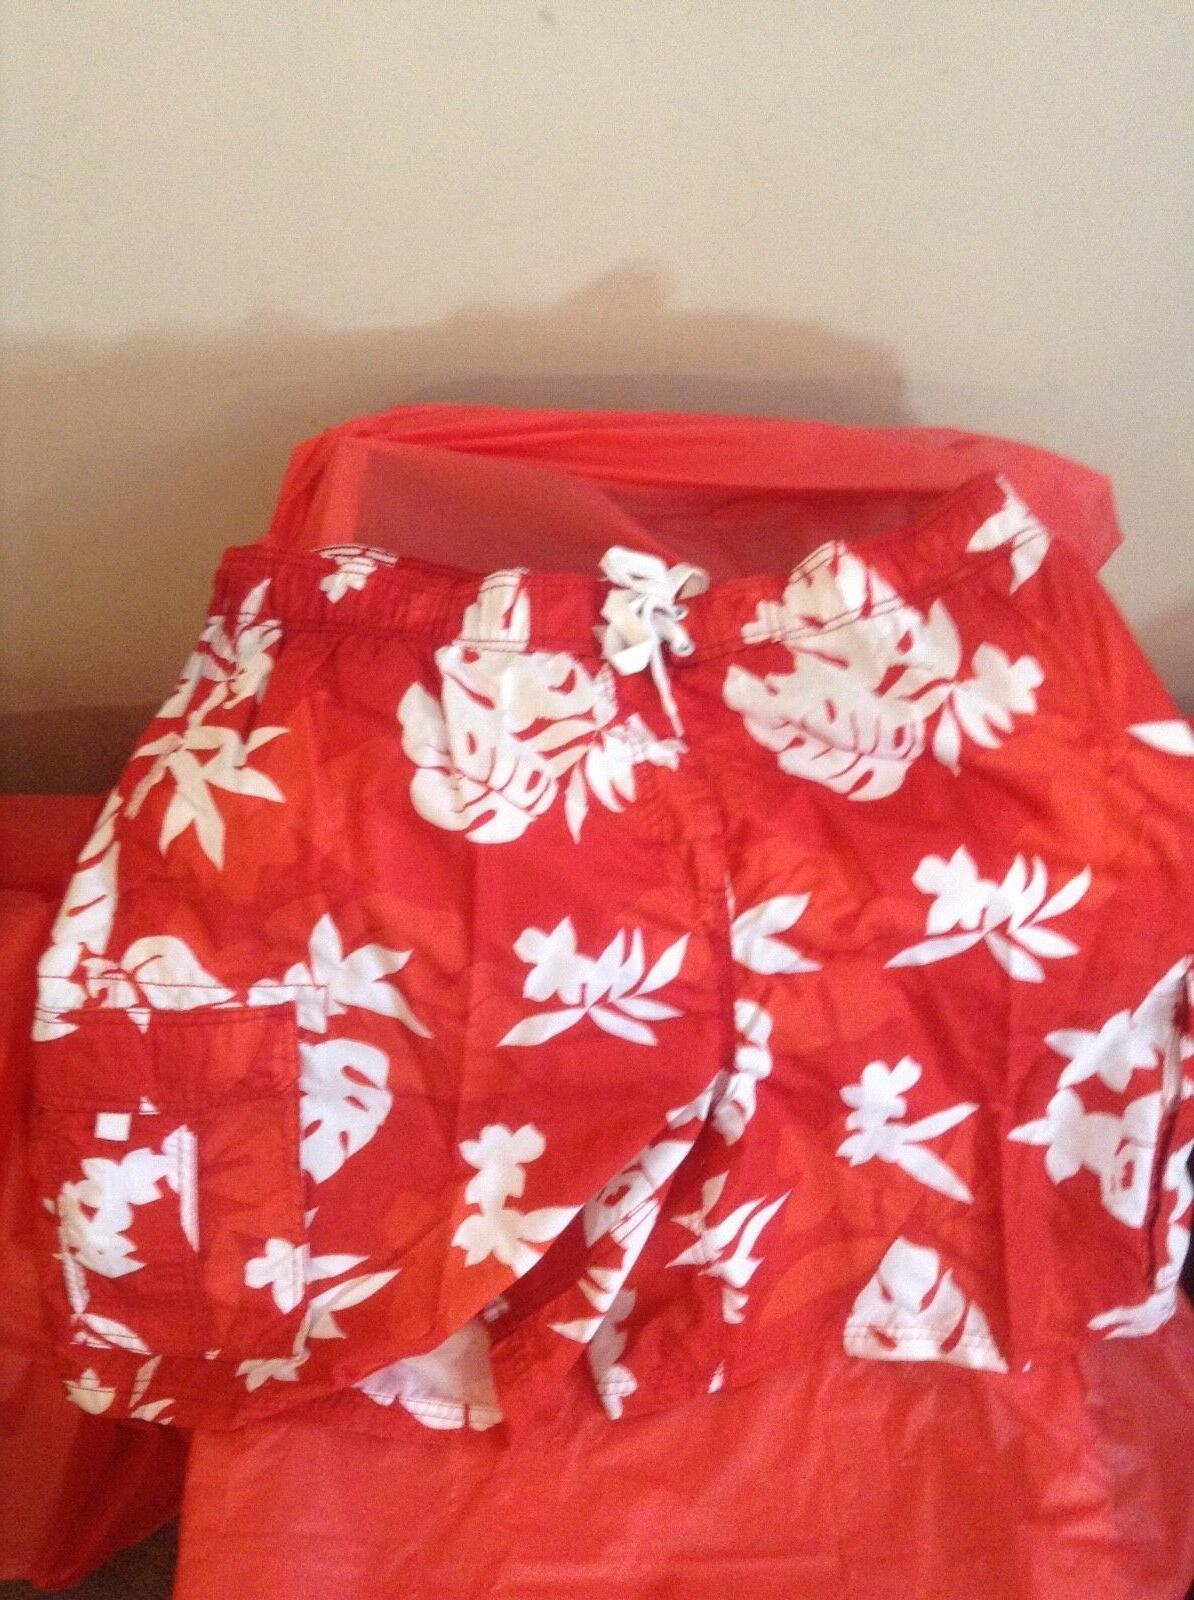 KANU SURF Board Shorts - Red Hawaiian Print - Quick Dry - Me